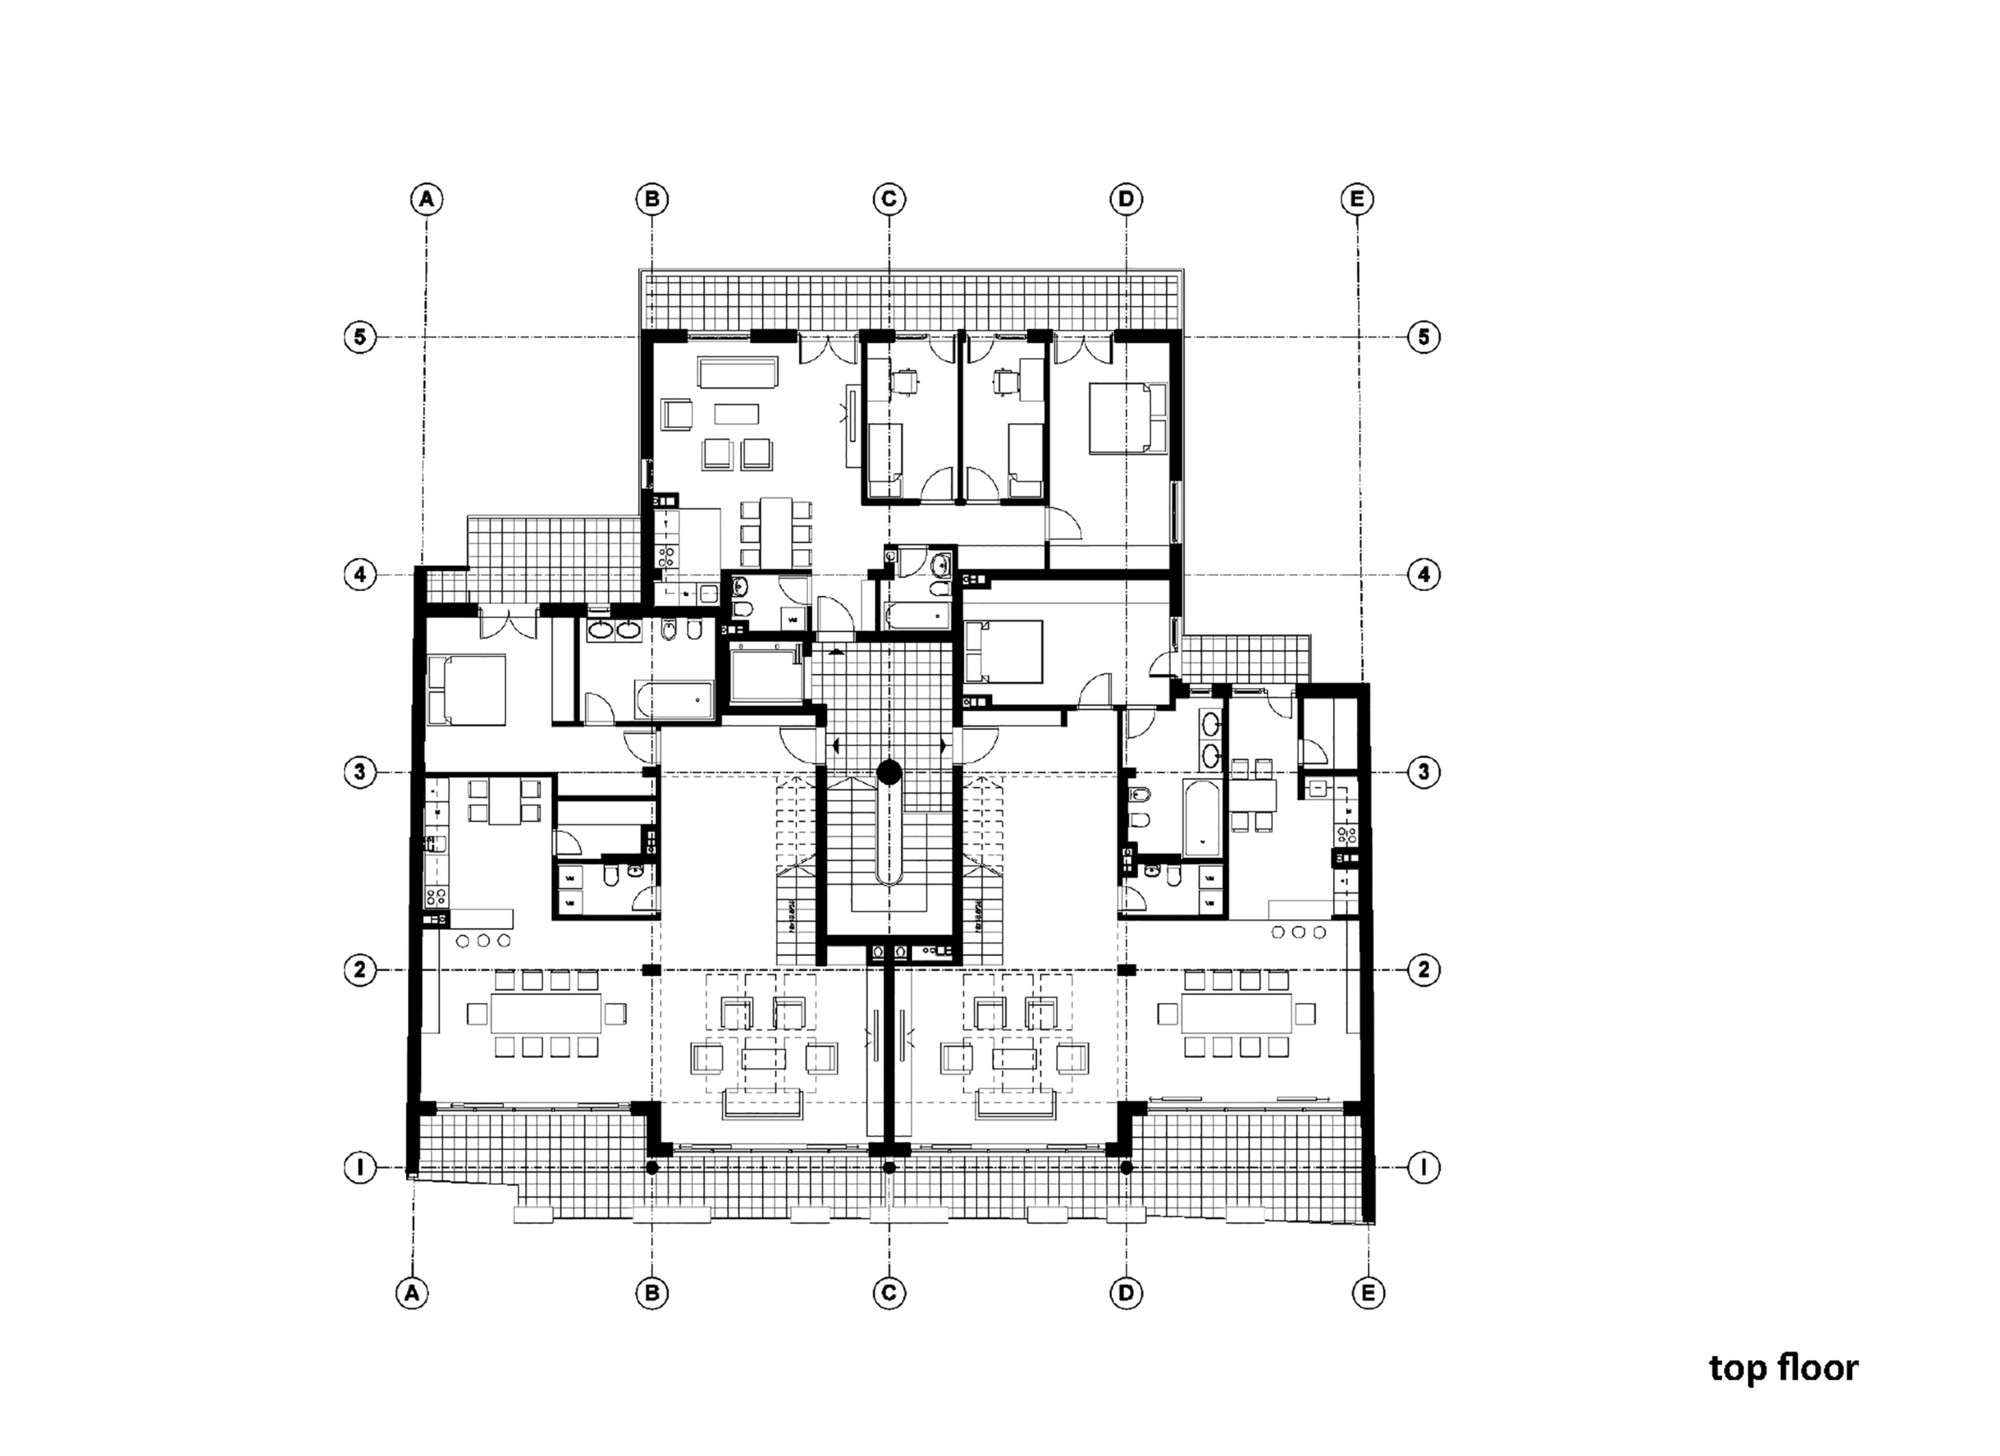 Floor Plan Two interlocking L shapes organize the building  one supports  community areas  the other supports classrooms  Distributed administrativ. Floor Plan Two interlocking L shapes organize the building  one